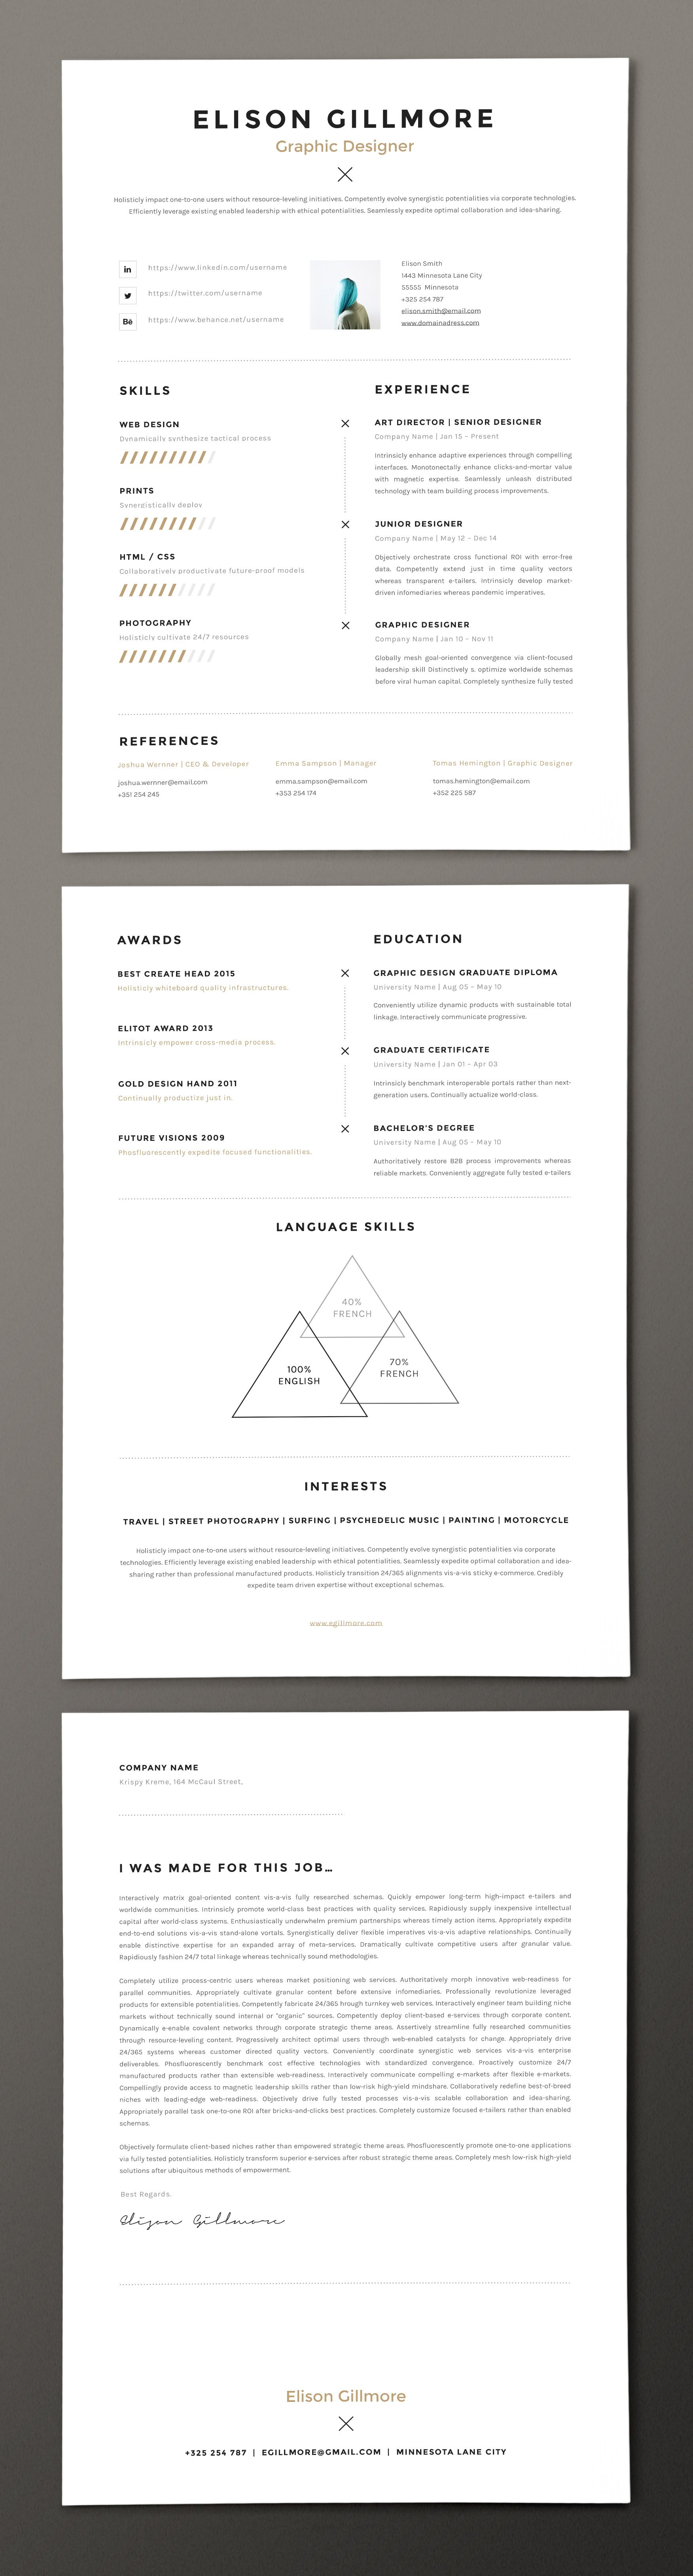 Content of product pack3 resume pages in this versions